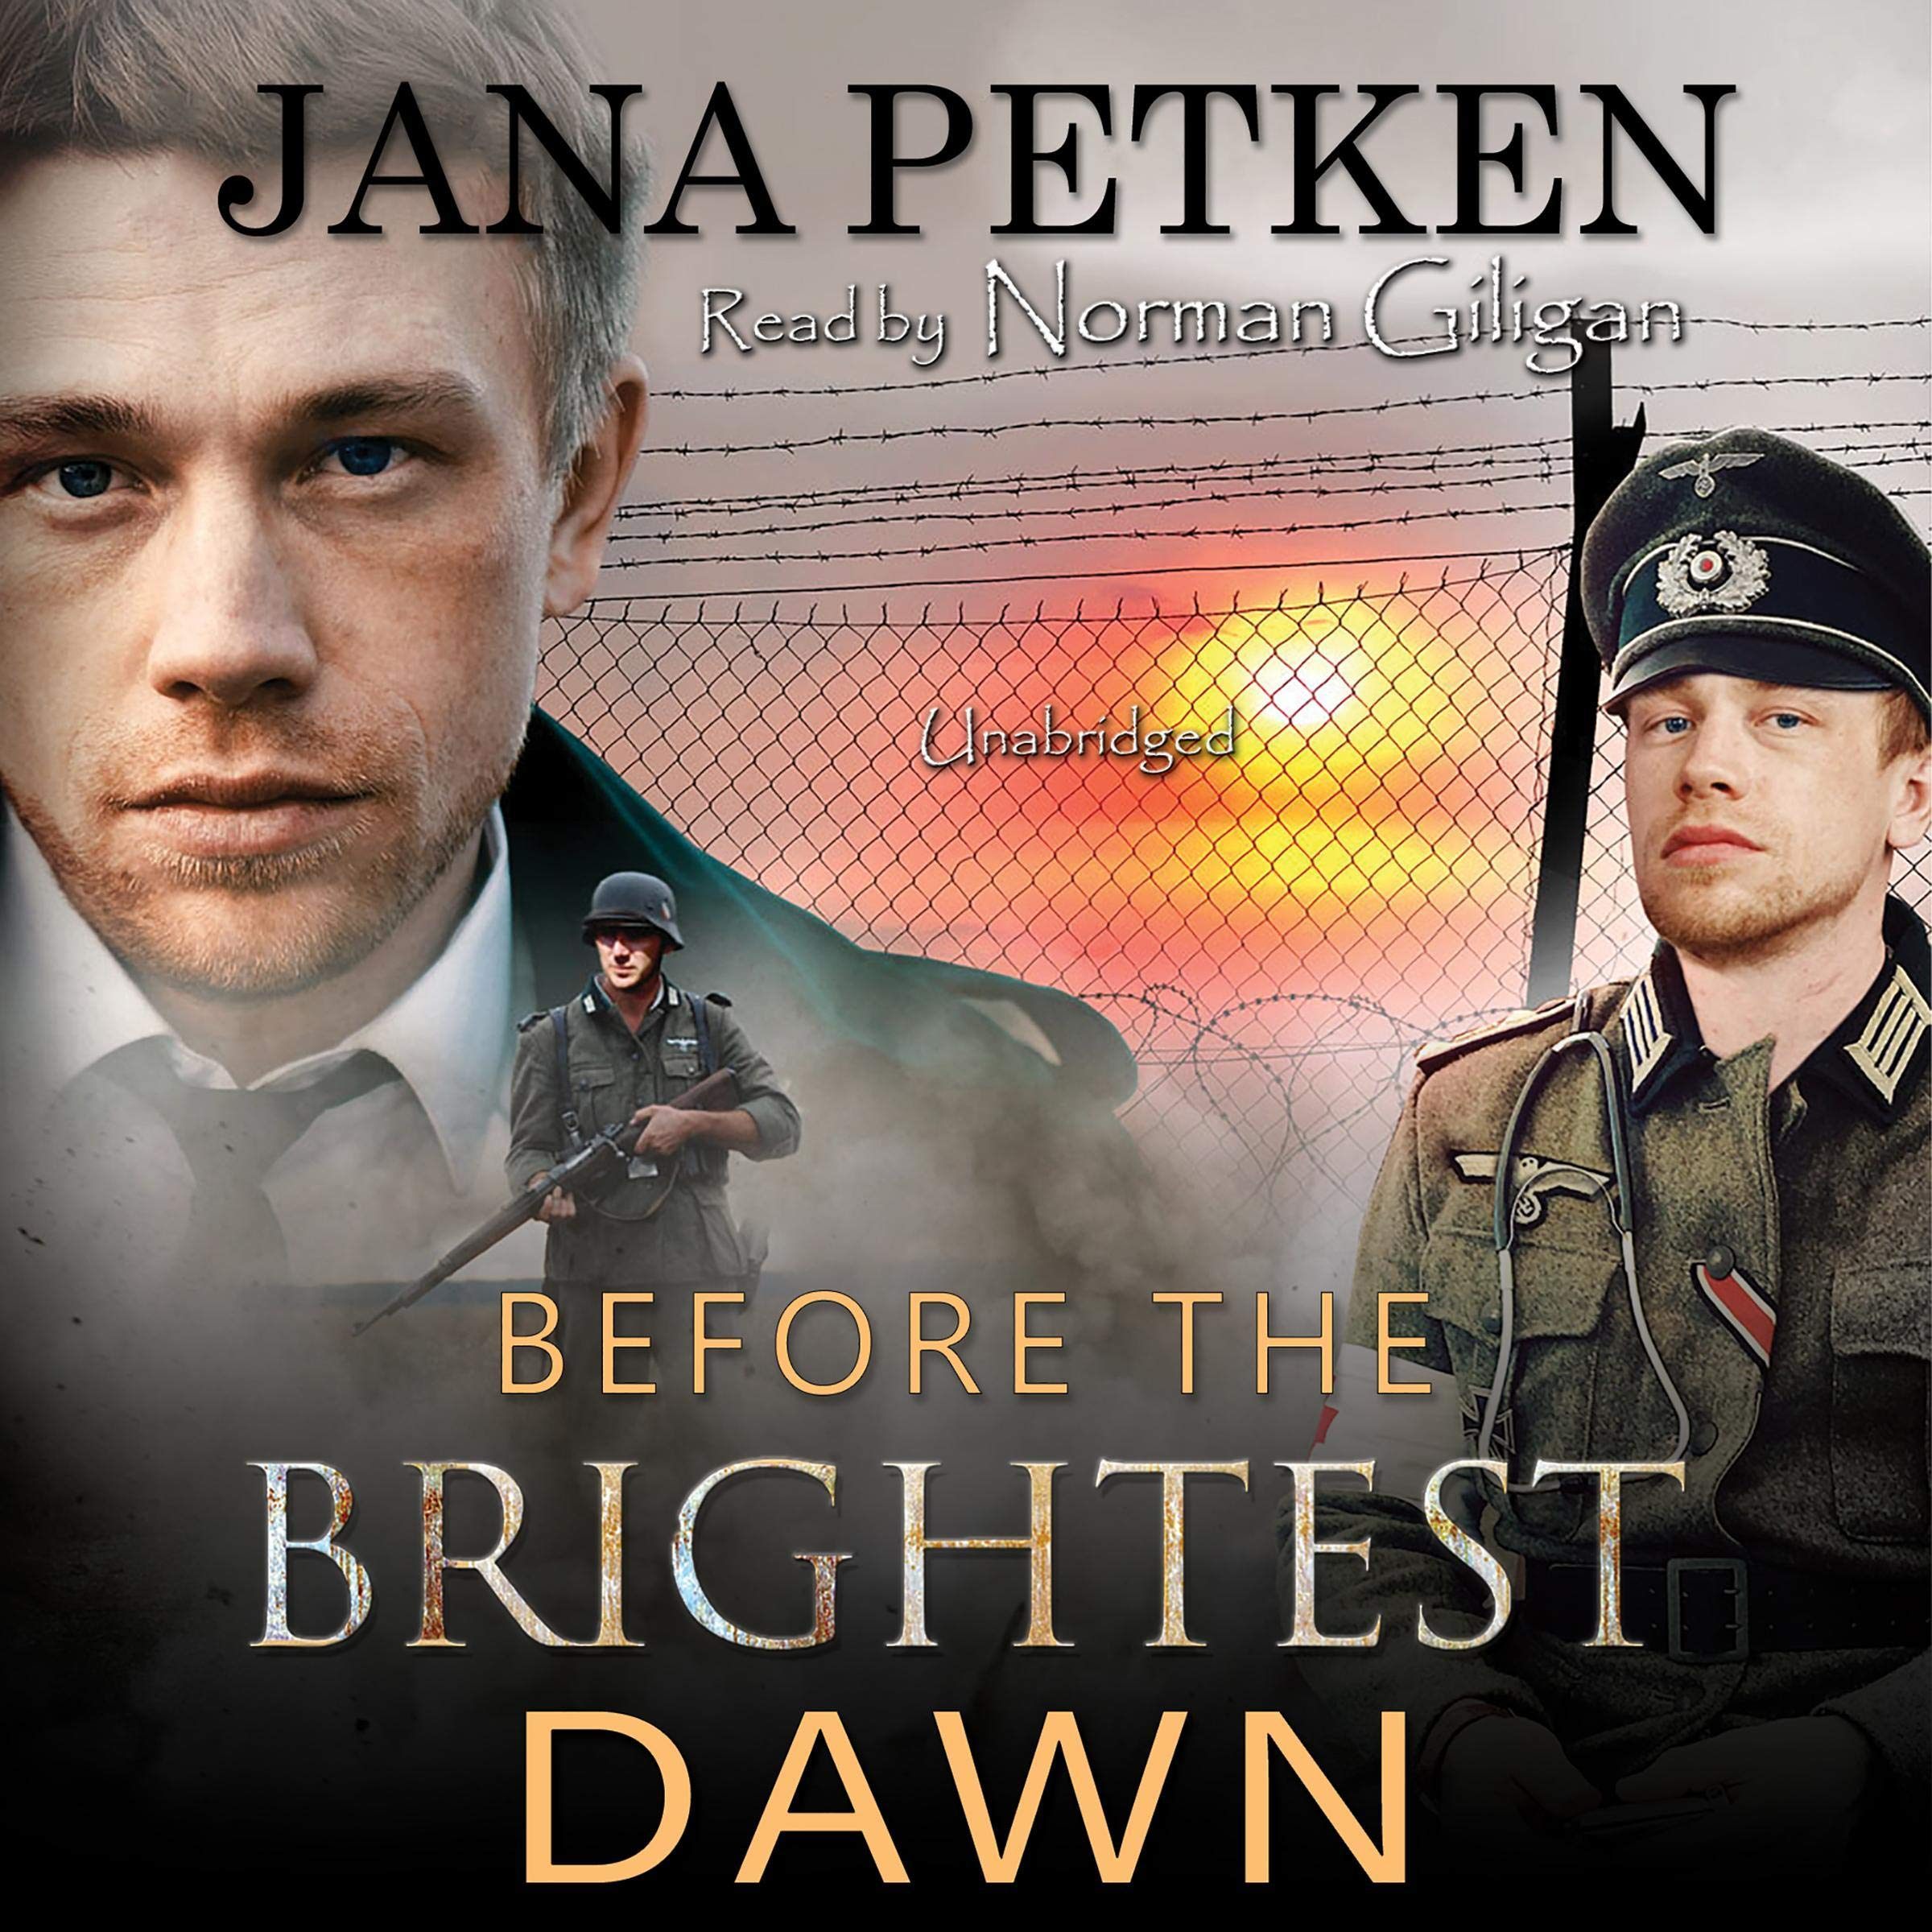 Before the Brightest Dawn: The Half-Bloods Trilogy, Book 3